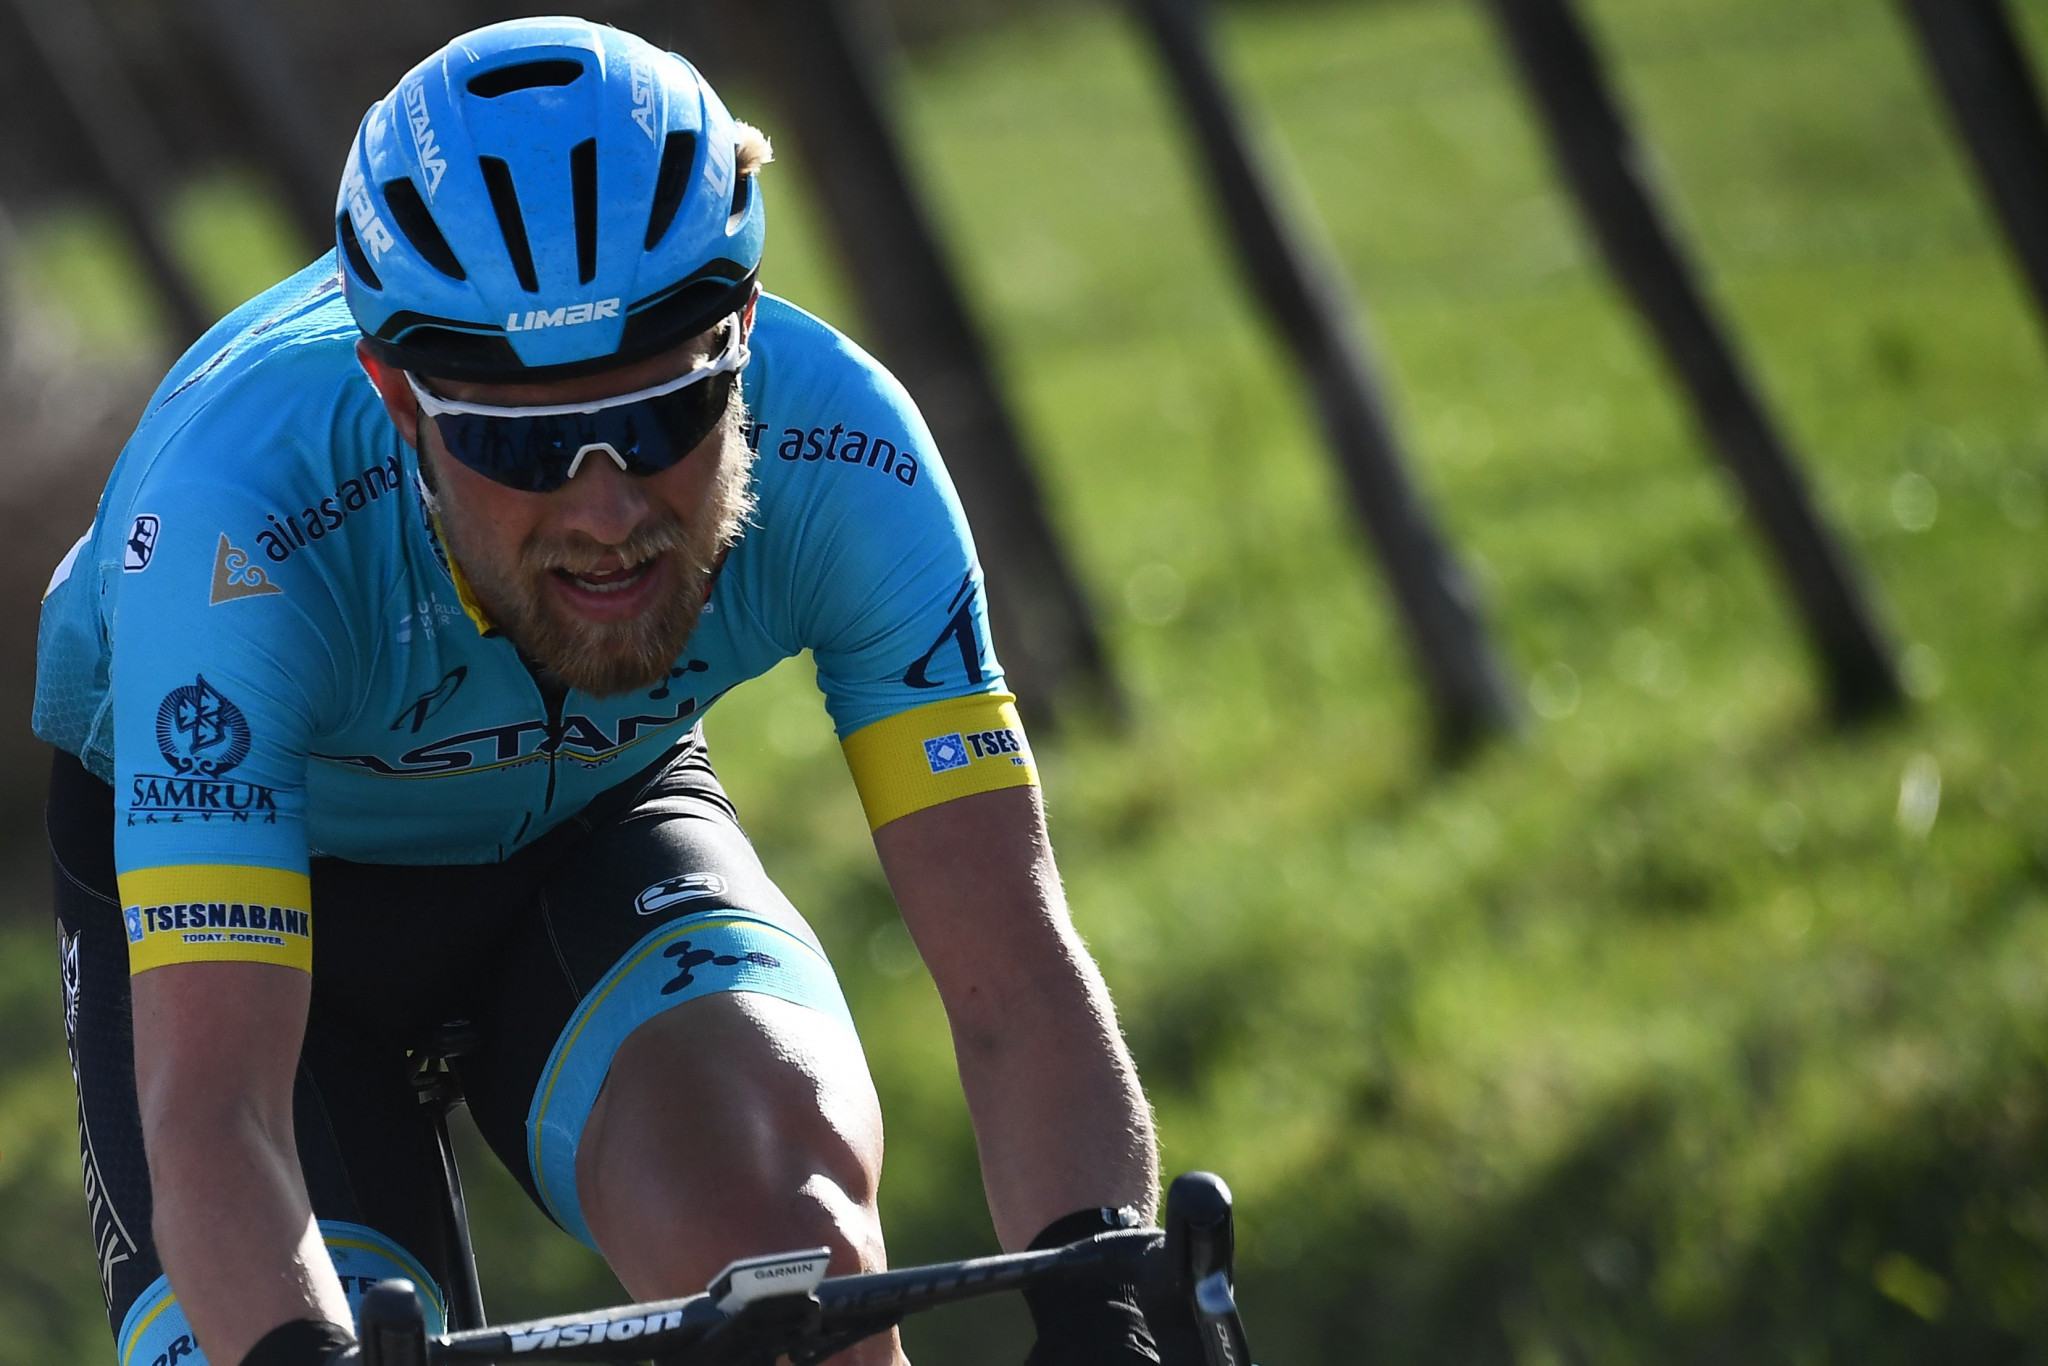 Denmark's Magnus Cort earned victory on the fourth stage of the Paris-Nice 2019 race today ©Getty Images